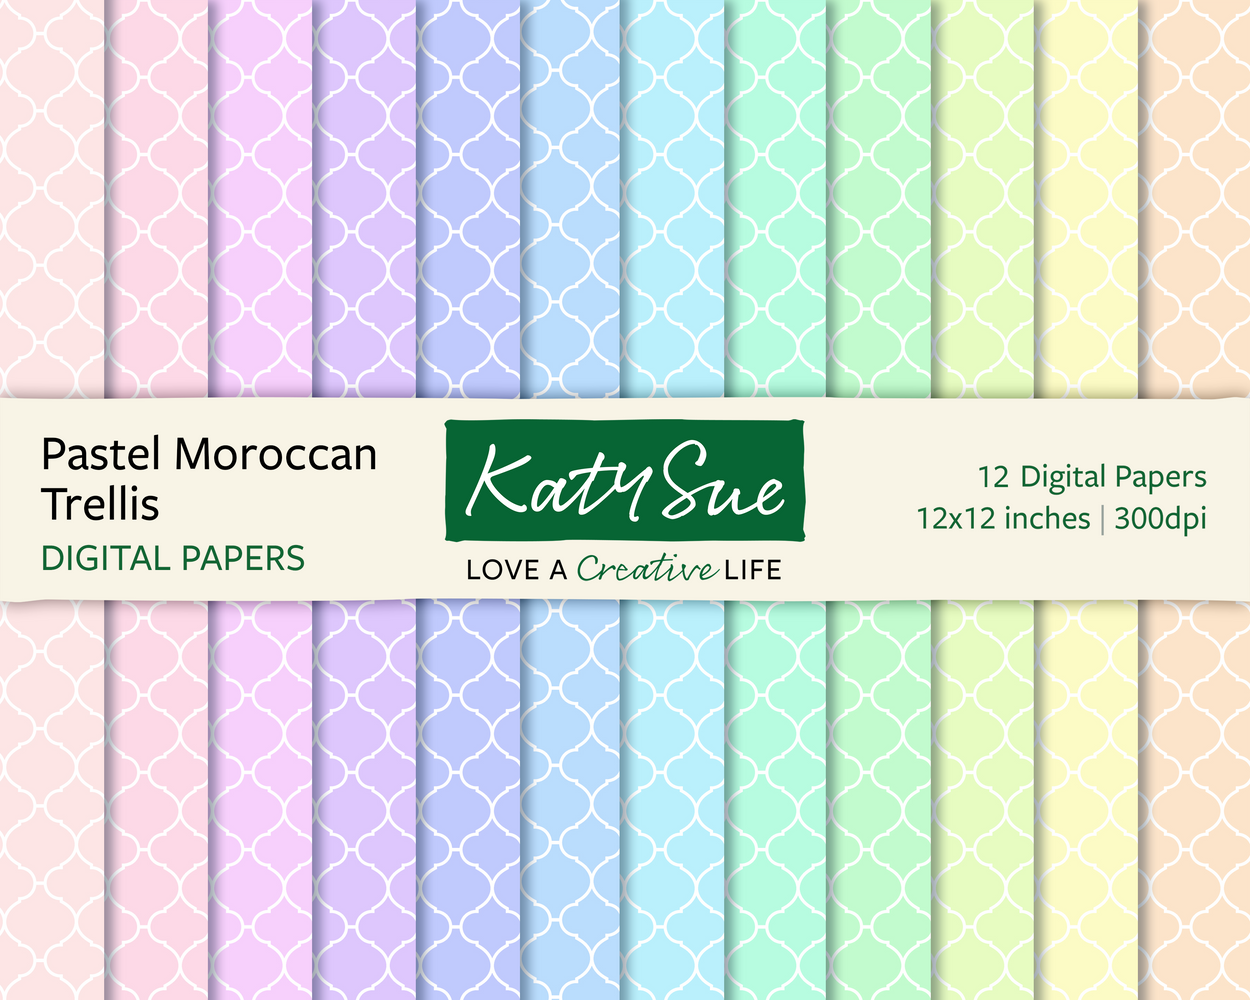 Pastel Moroccan Trellis | 12x12 Digital Papers